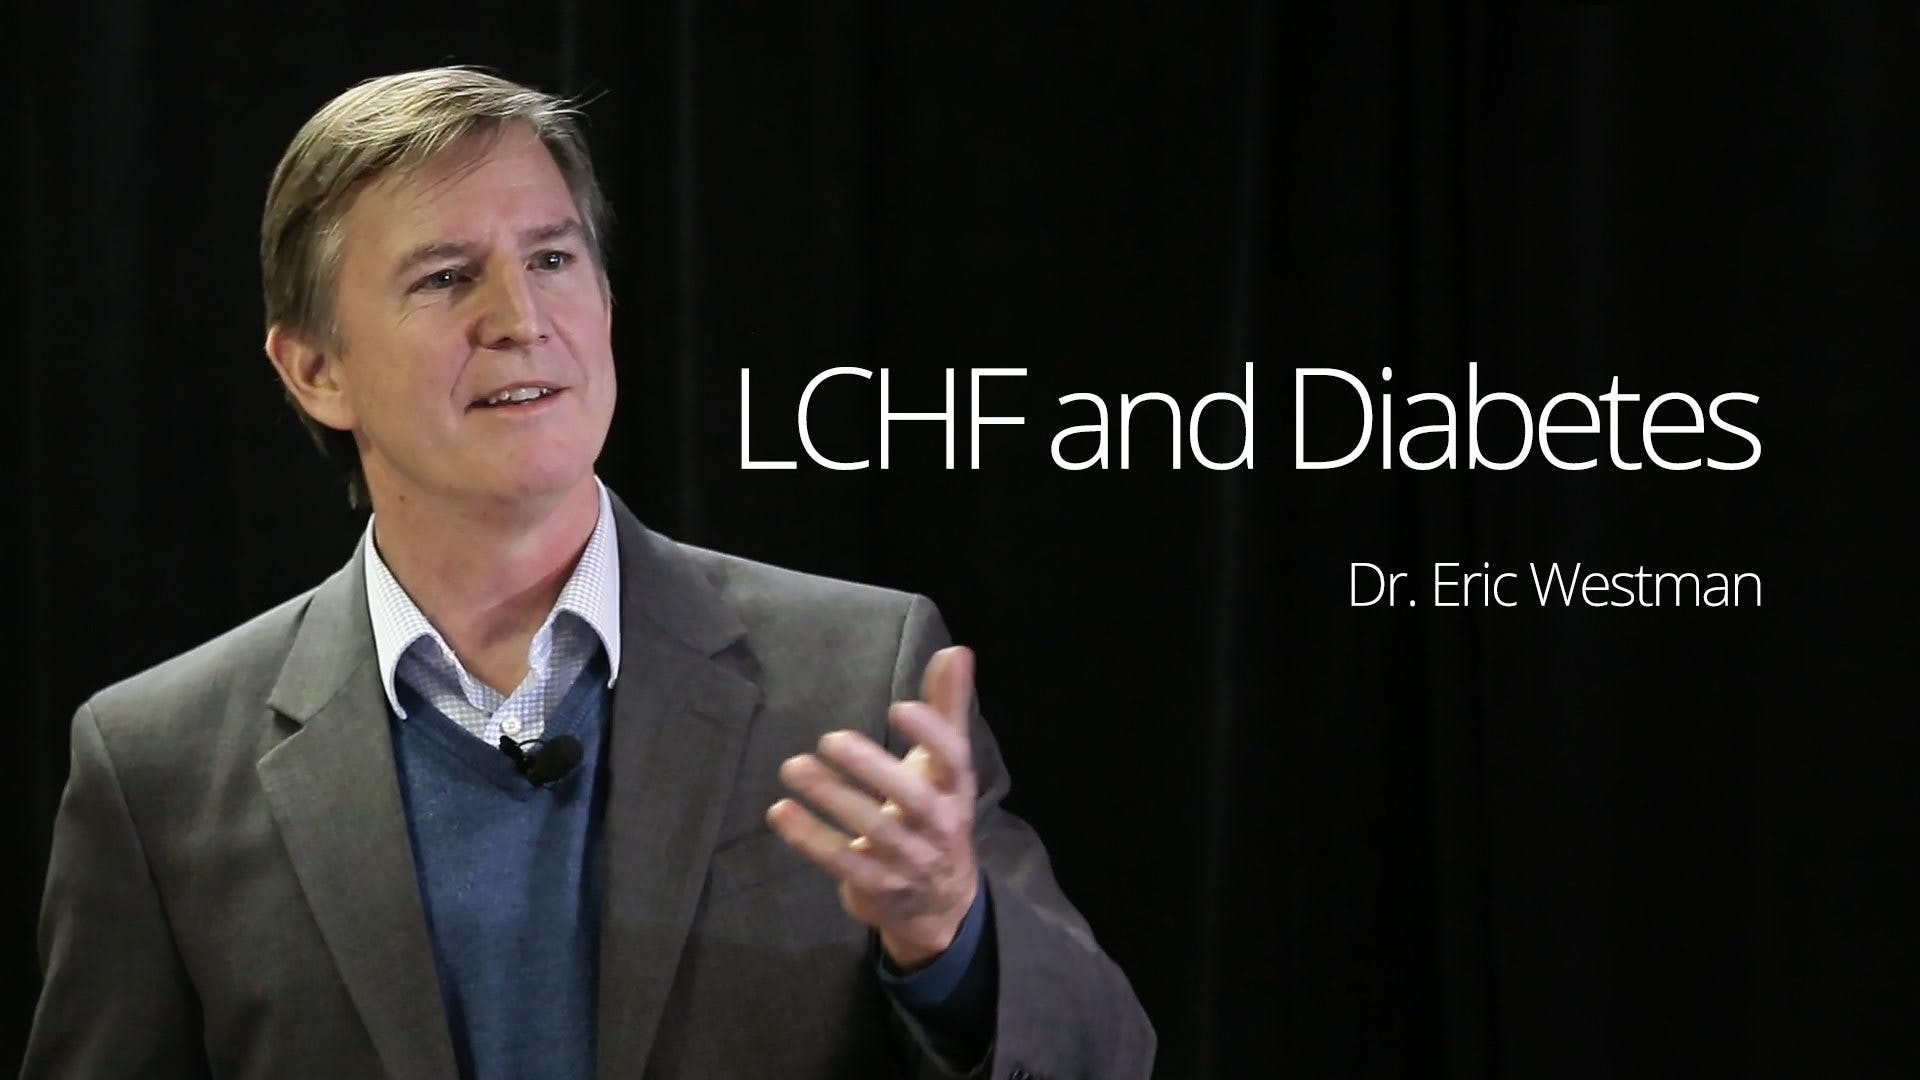 LCHF and diabetes